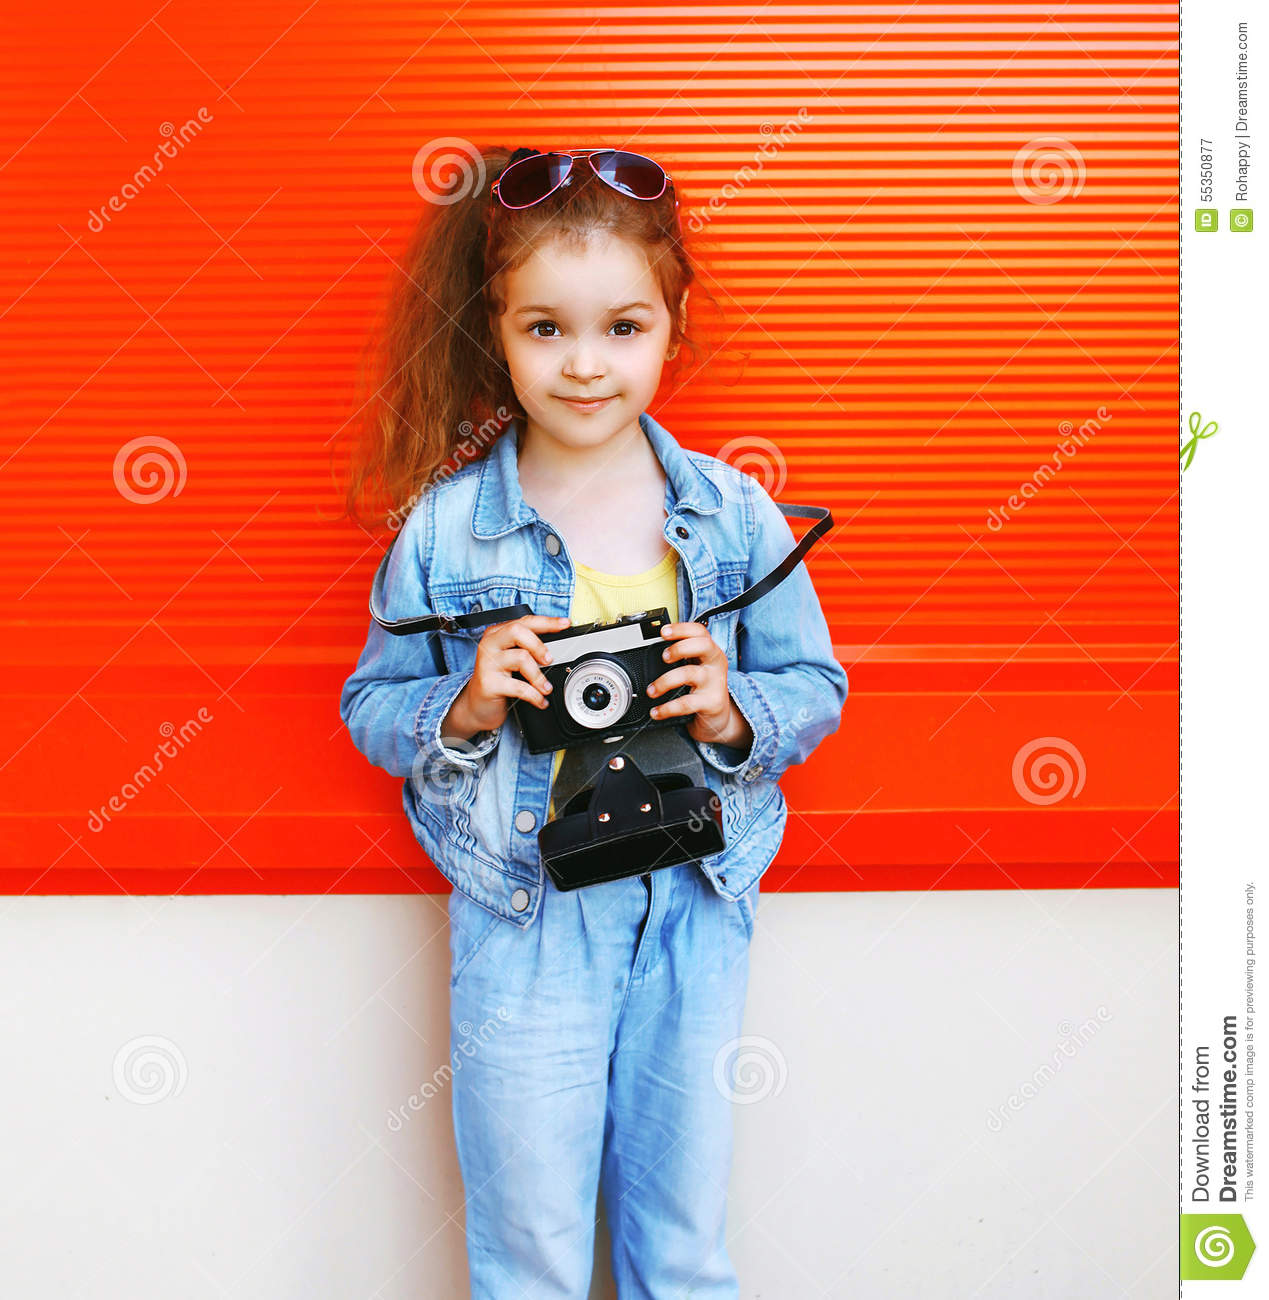 defd00623f18 Fashion kid concept - portrait of stylish little girl child wearing a jeans  clothes and sunglasses with old retro vintage camera against the colorful  red ...